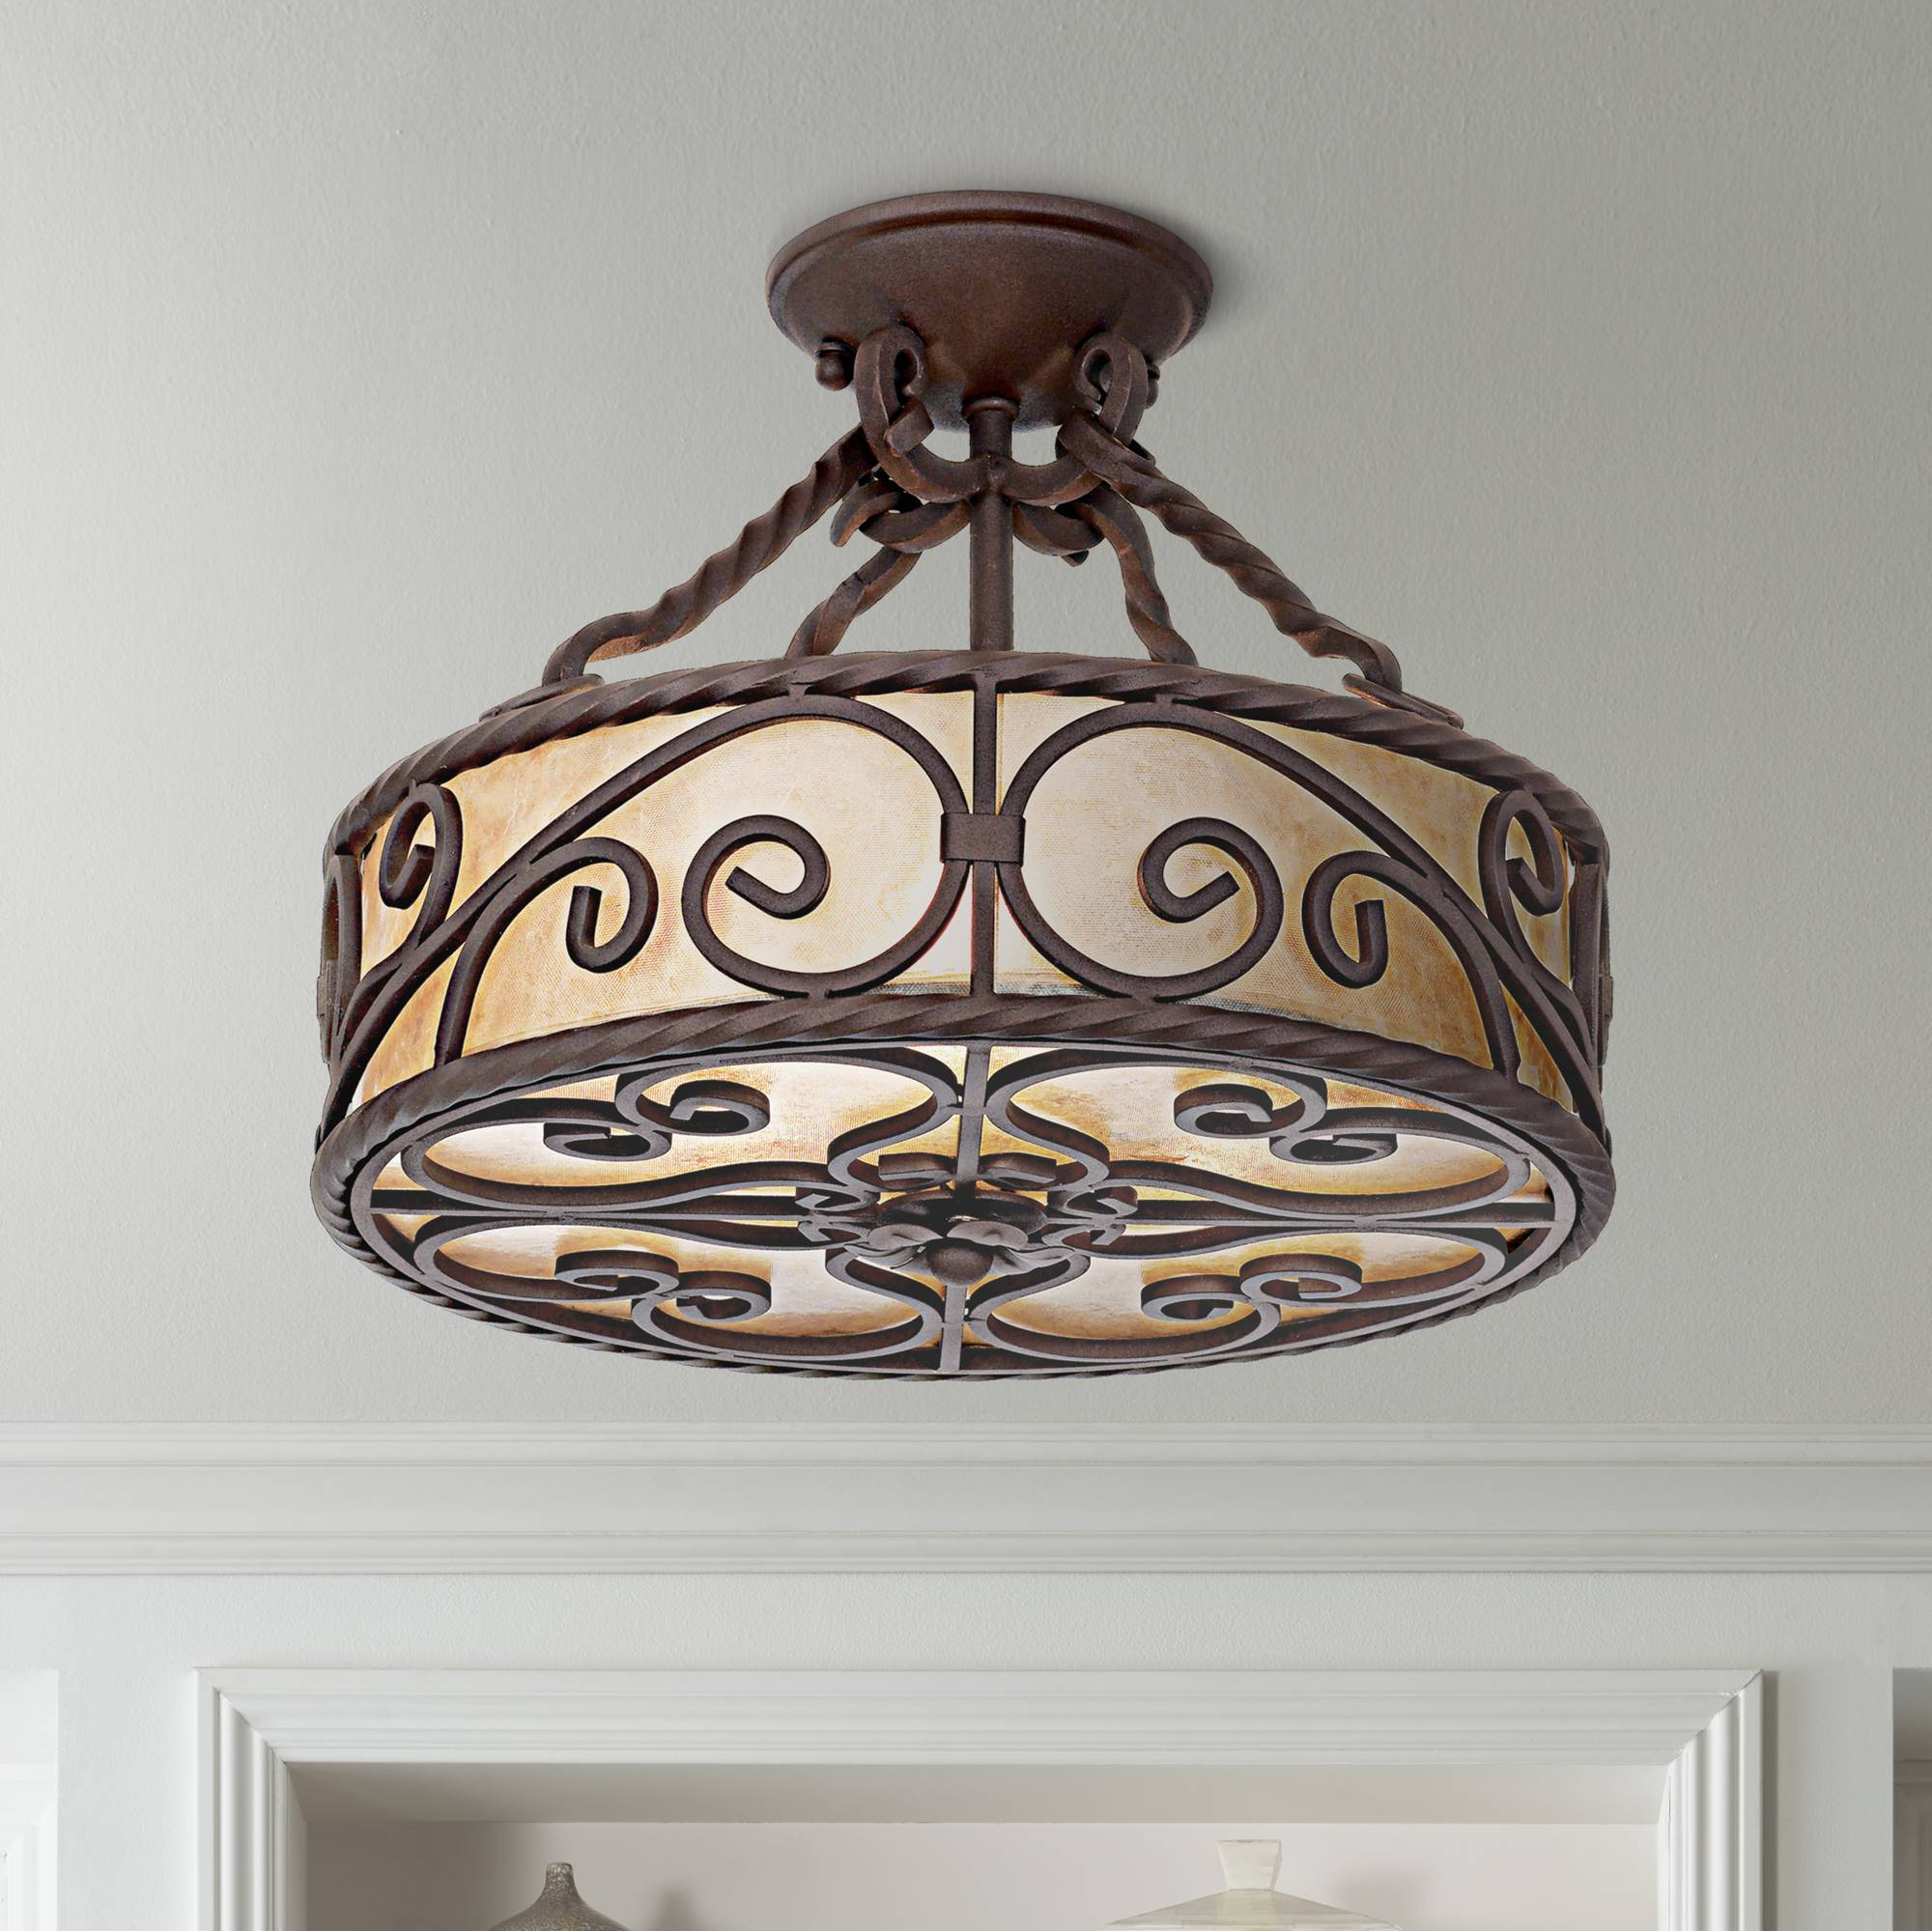 Details About Rustic Ceiling Light Fixture Semi Flush Mount Scroll 15 Wide Bedroom Kitchen